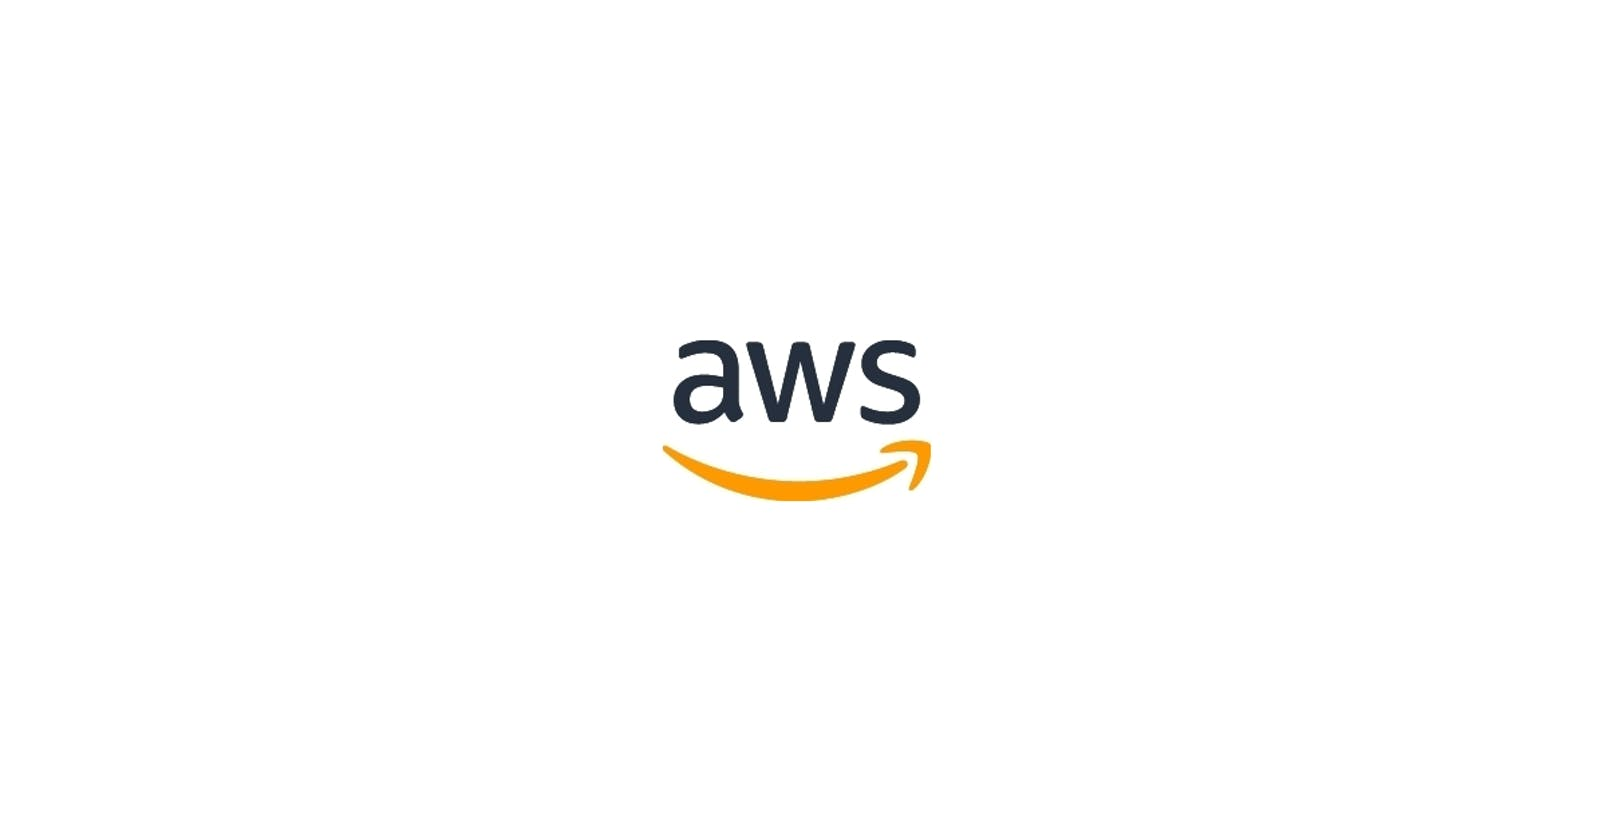 Introduction to Amazon Web Services(AWS)